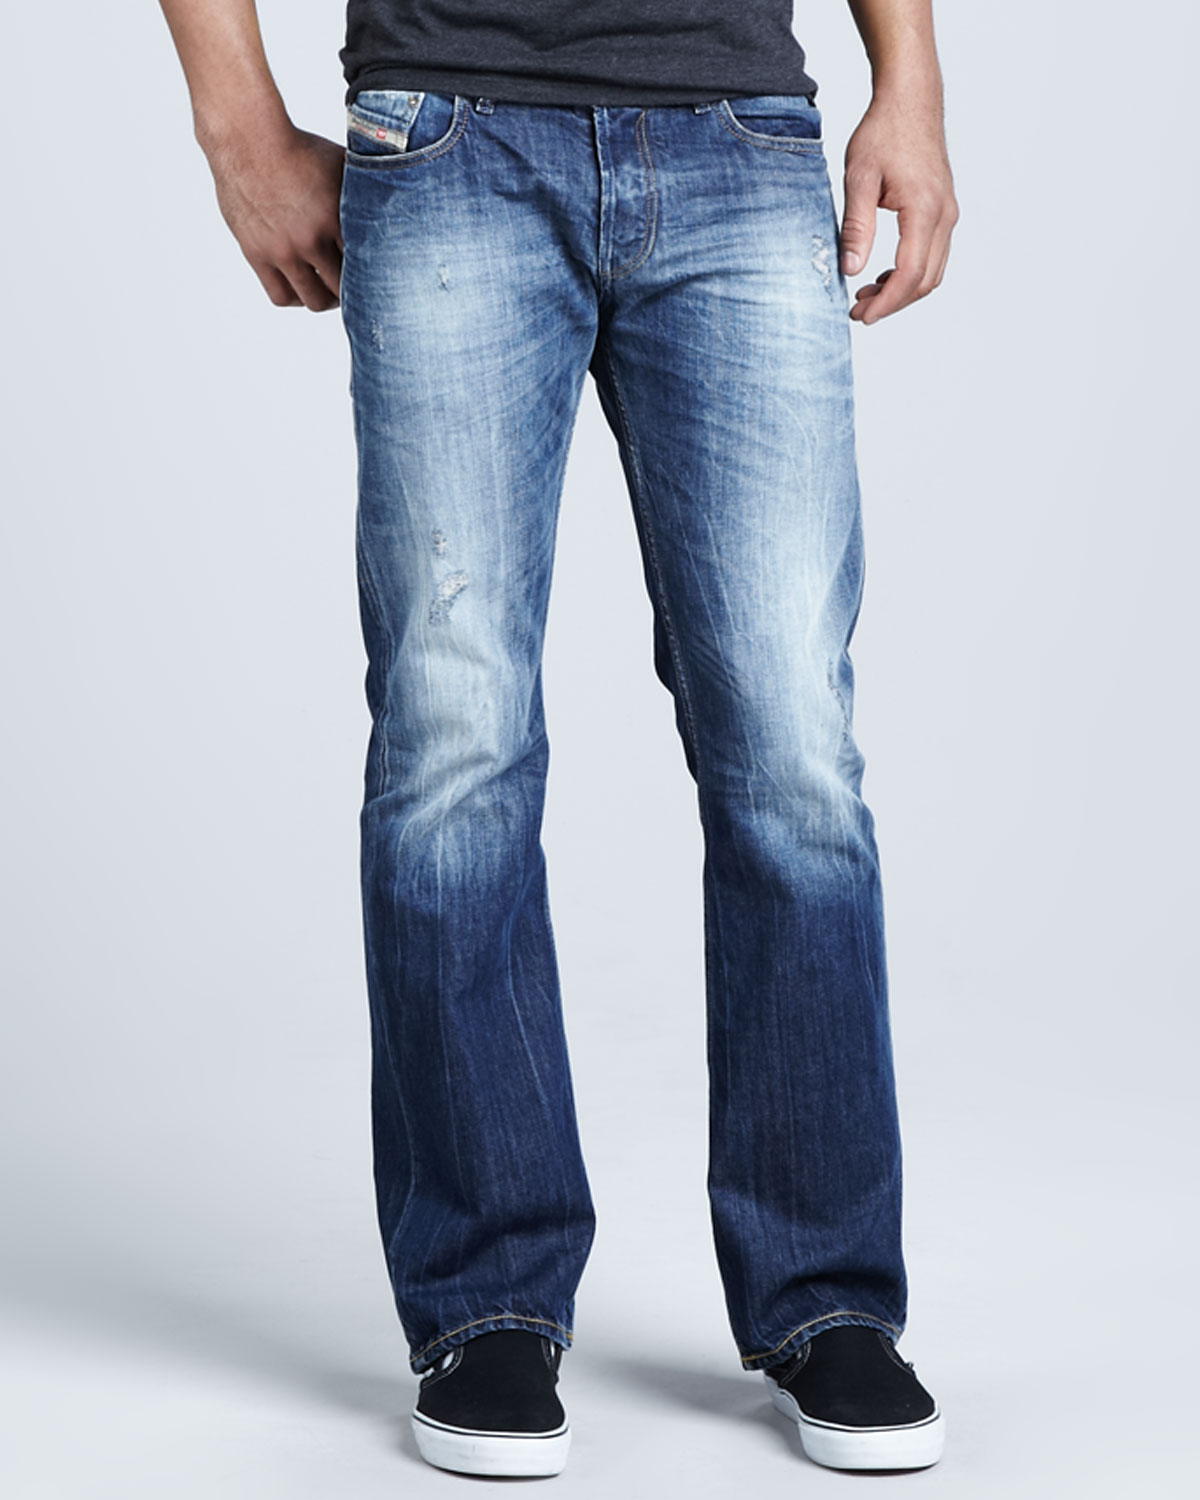 Diesel Fanker 008b9 Bootcut Jeans in Blue for Men  Lyst